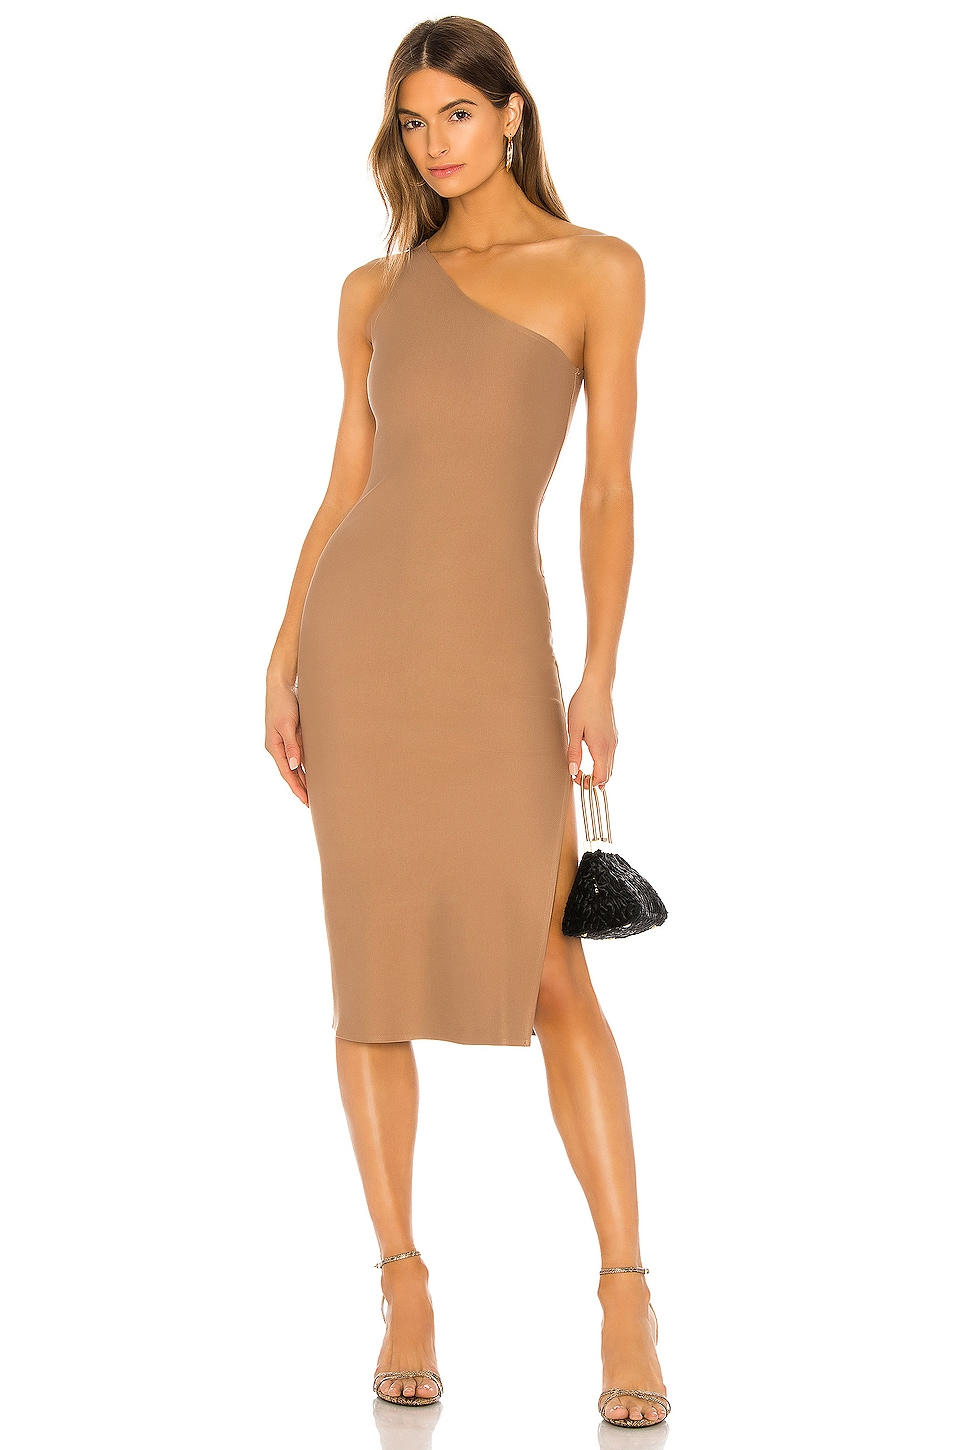 Lovers + Friends Jackie Midi Dress in Taupe Brown